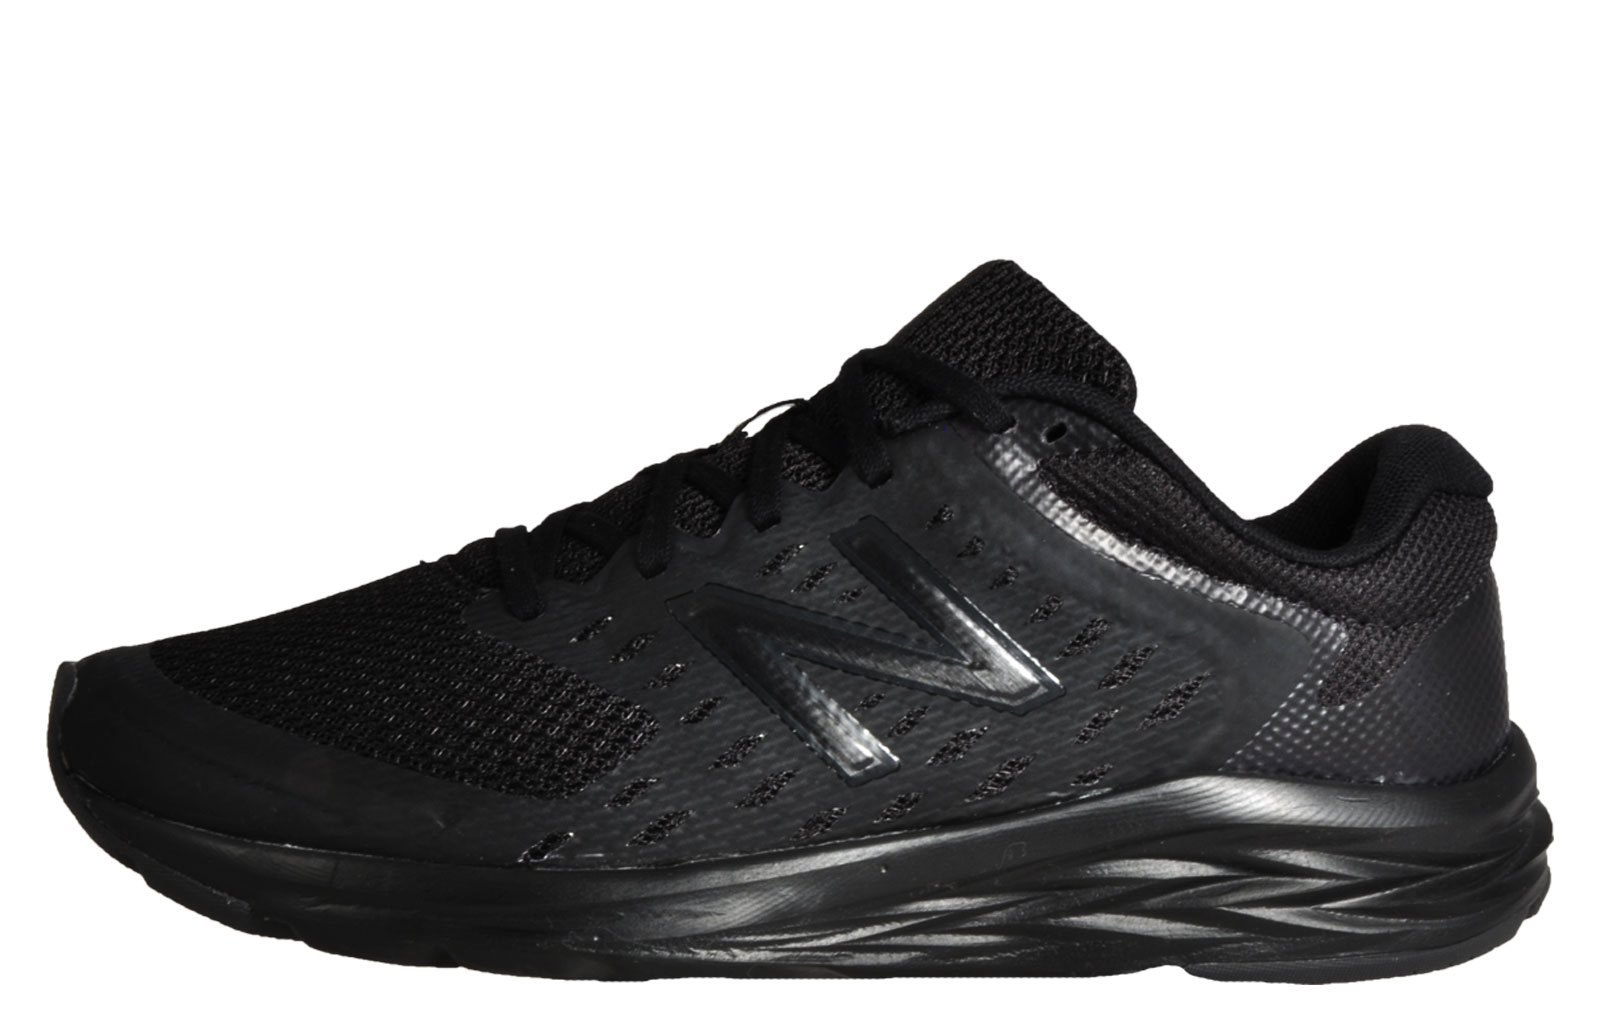 7953f13f2b23d New Balance M490 LK5 Mens Running Shoes Fitness Gym Workout Trainers Black